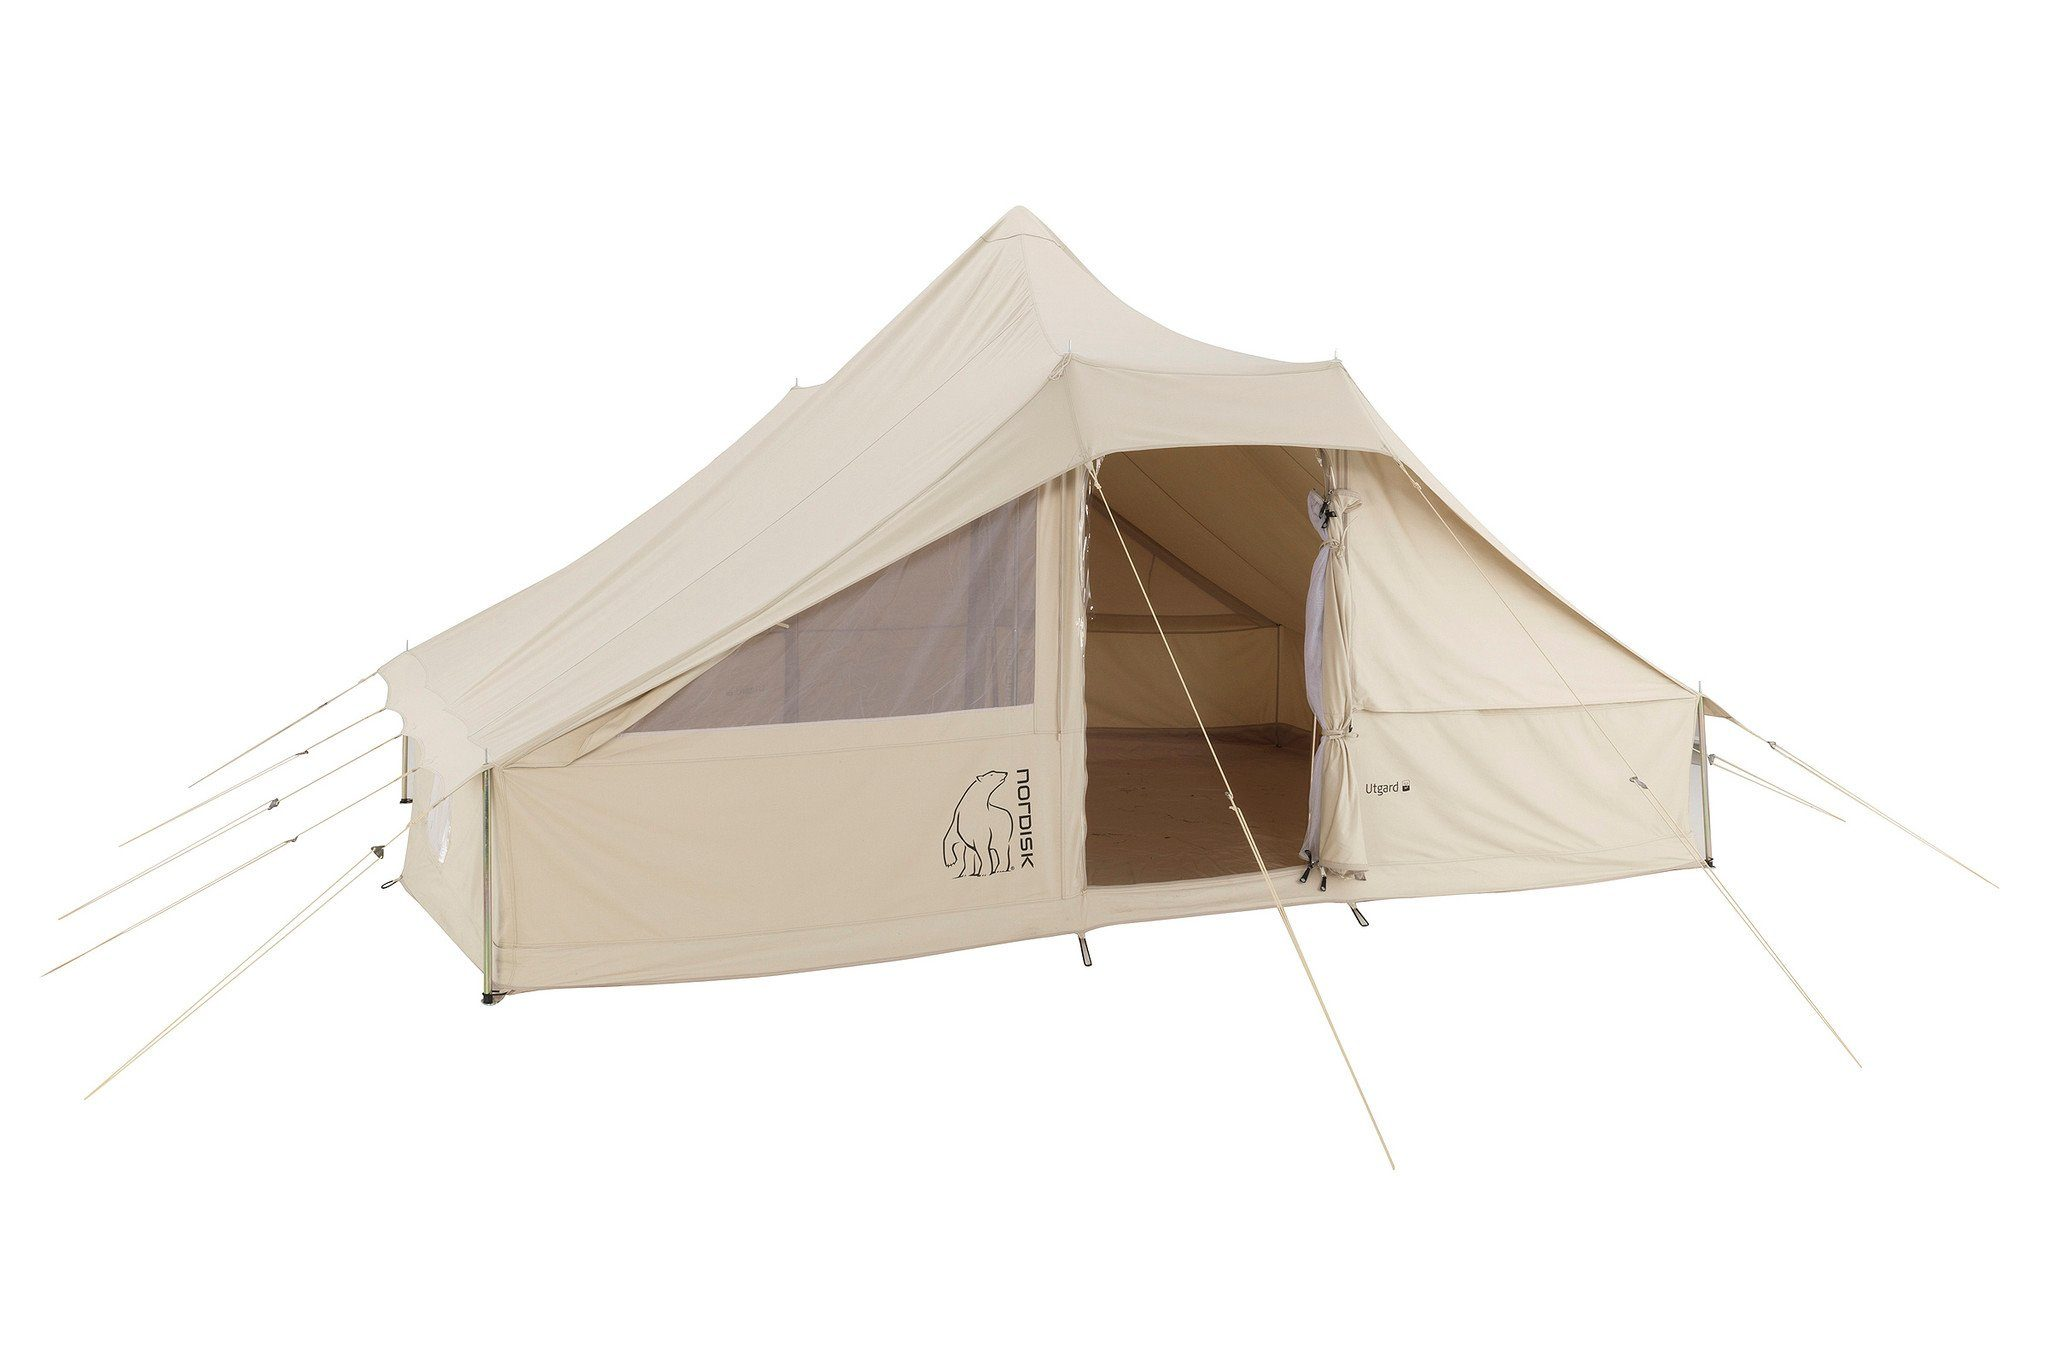 Nordisk Zelt »Utgard 13.2 m² Tent Technical Cotton«